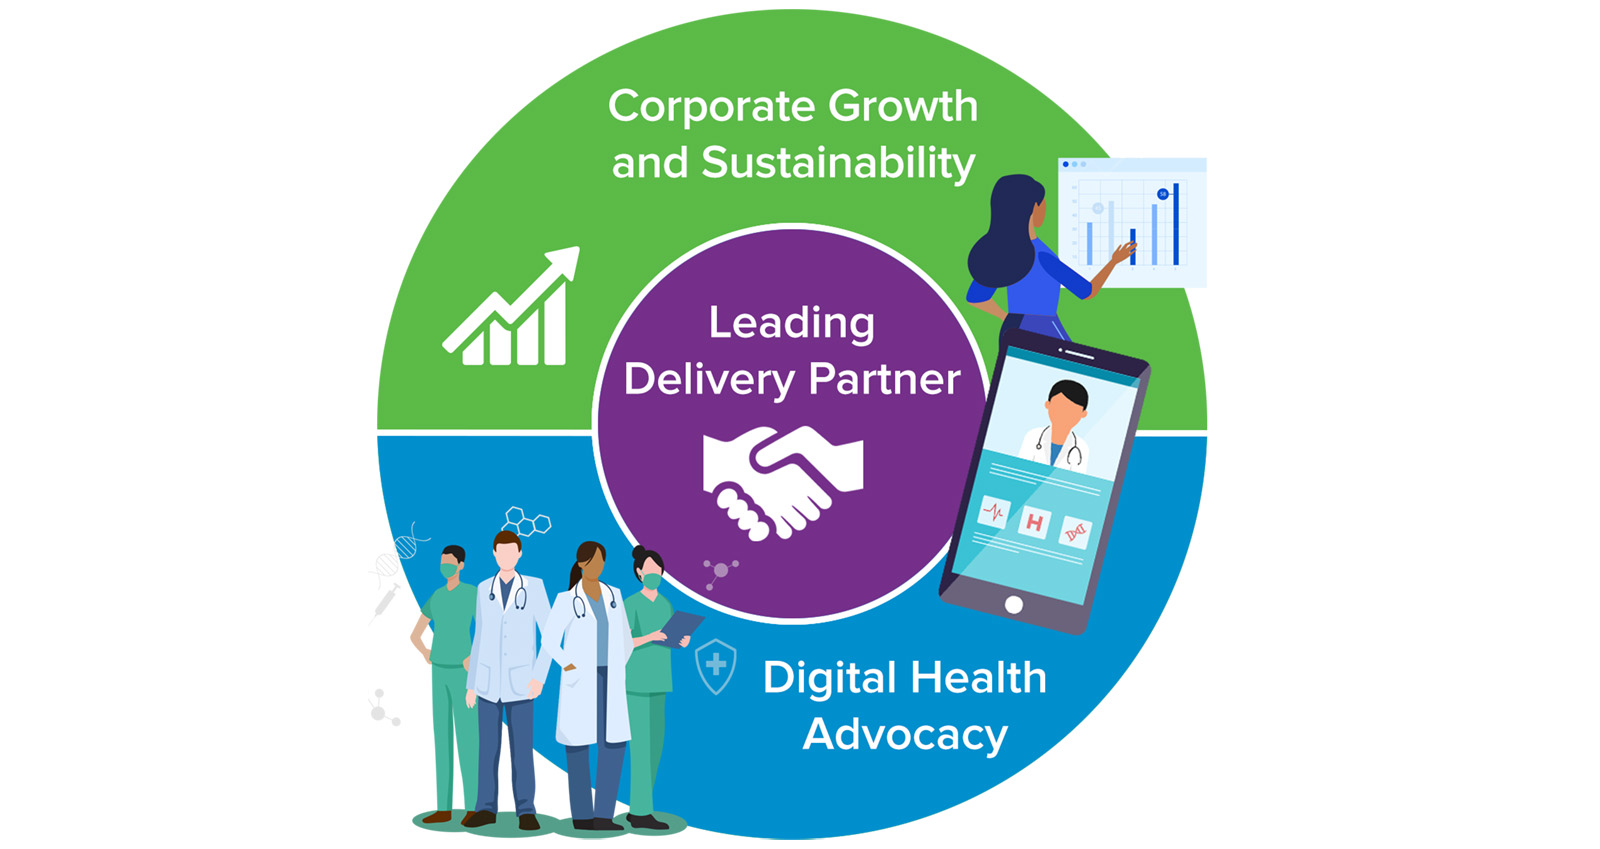 Accelerating Digital Health through OntarioMD's 2020-25 Strategic Plan